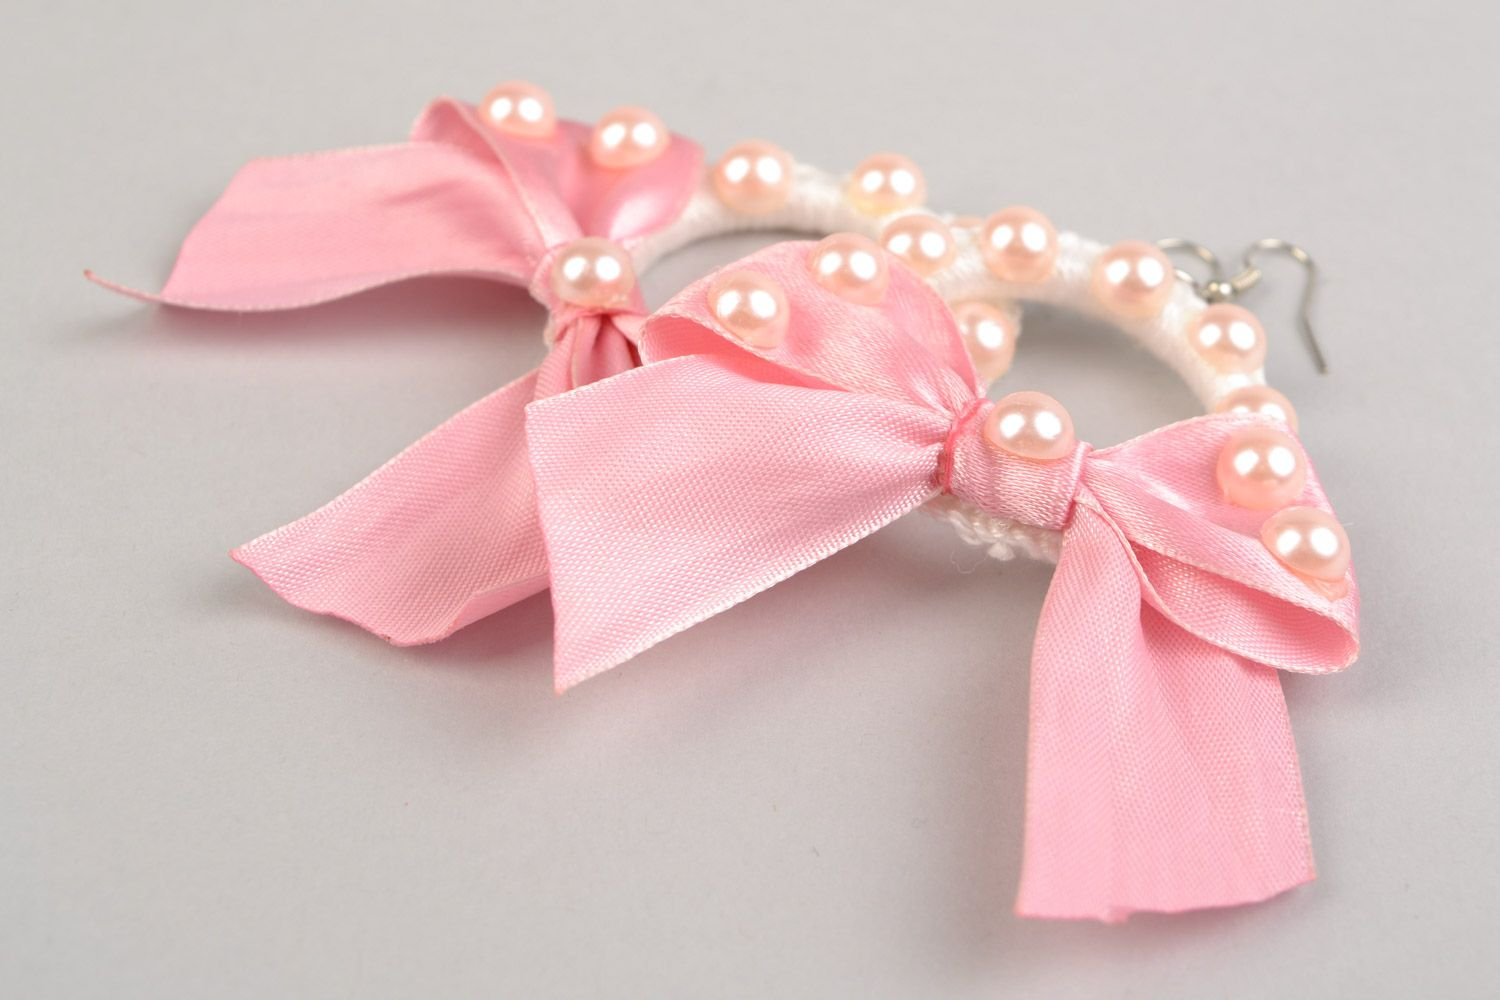 Braided earrings made of plastic rings and threads with pink ribbons present for girlfriend photo 4